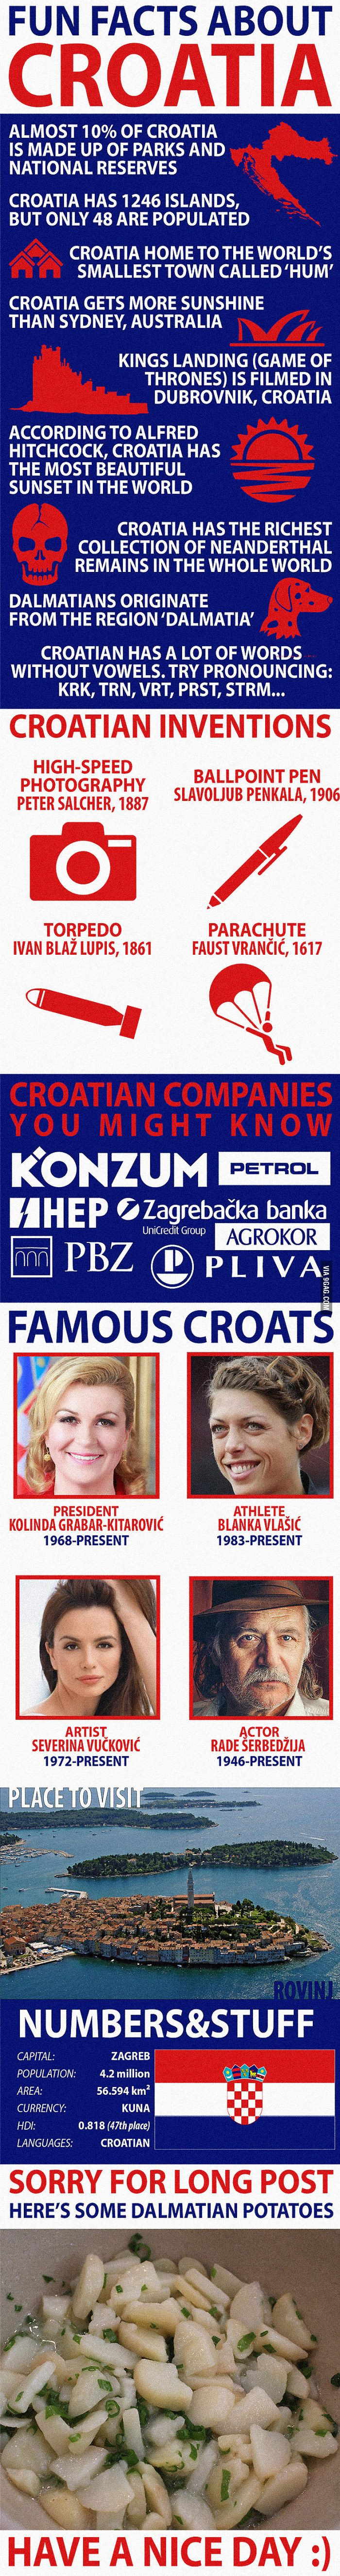 Fun Facts about Croatia